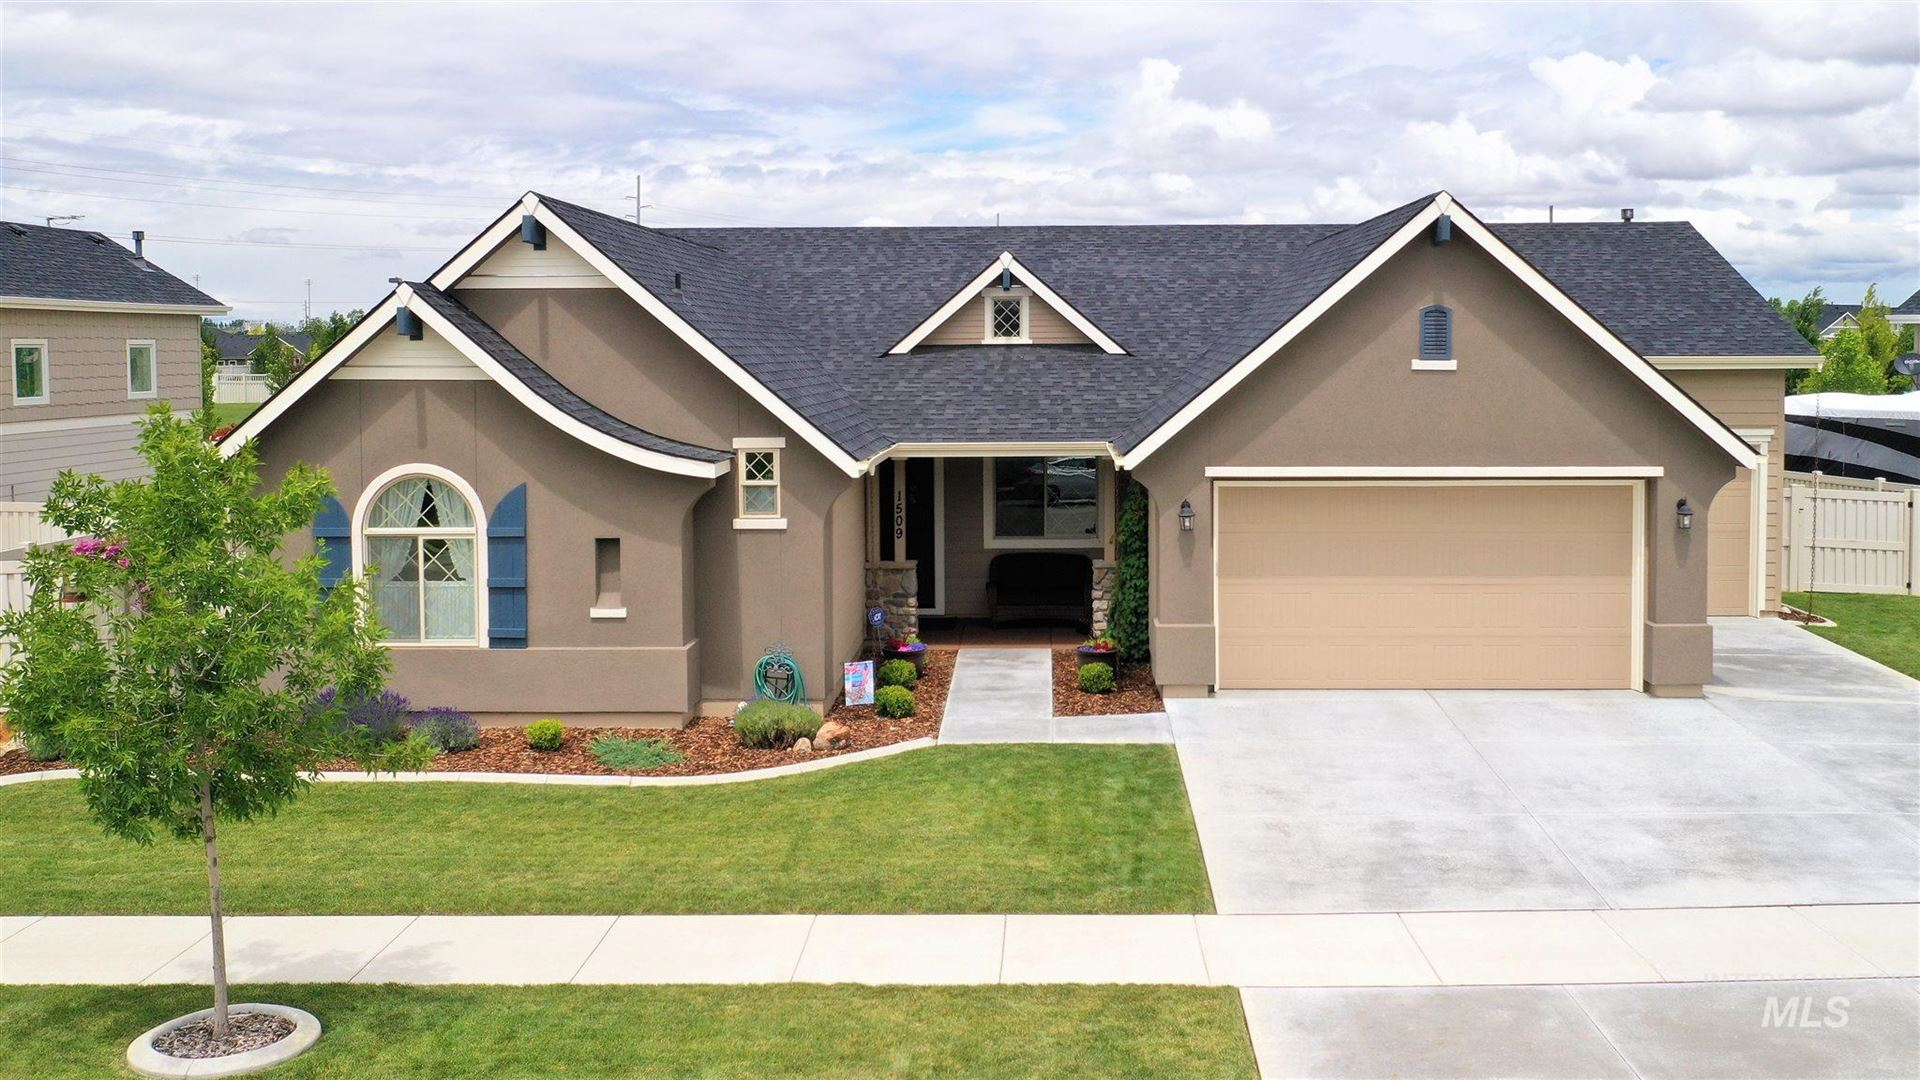 Photo of 1509 Big Horn  Ct., Middleton, ID 83644 (MLS # 98772383)